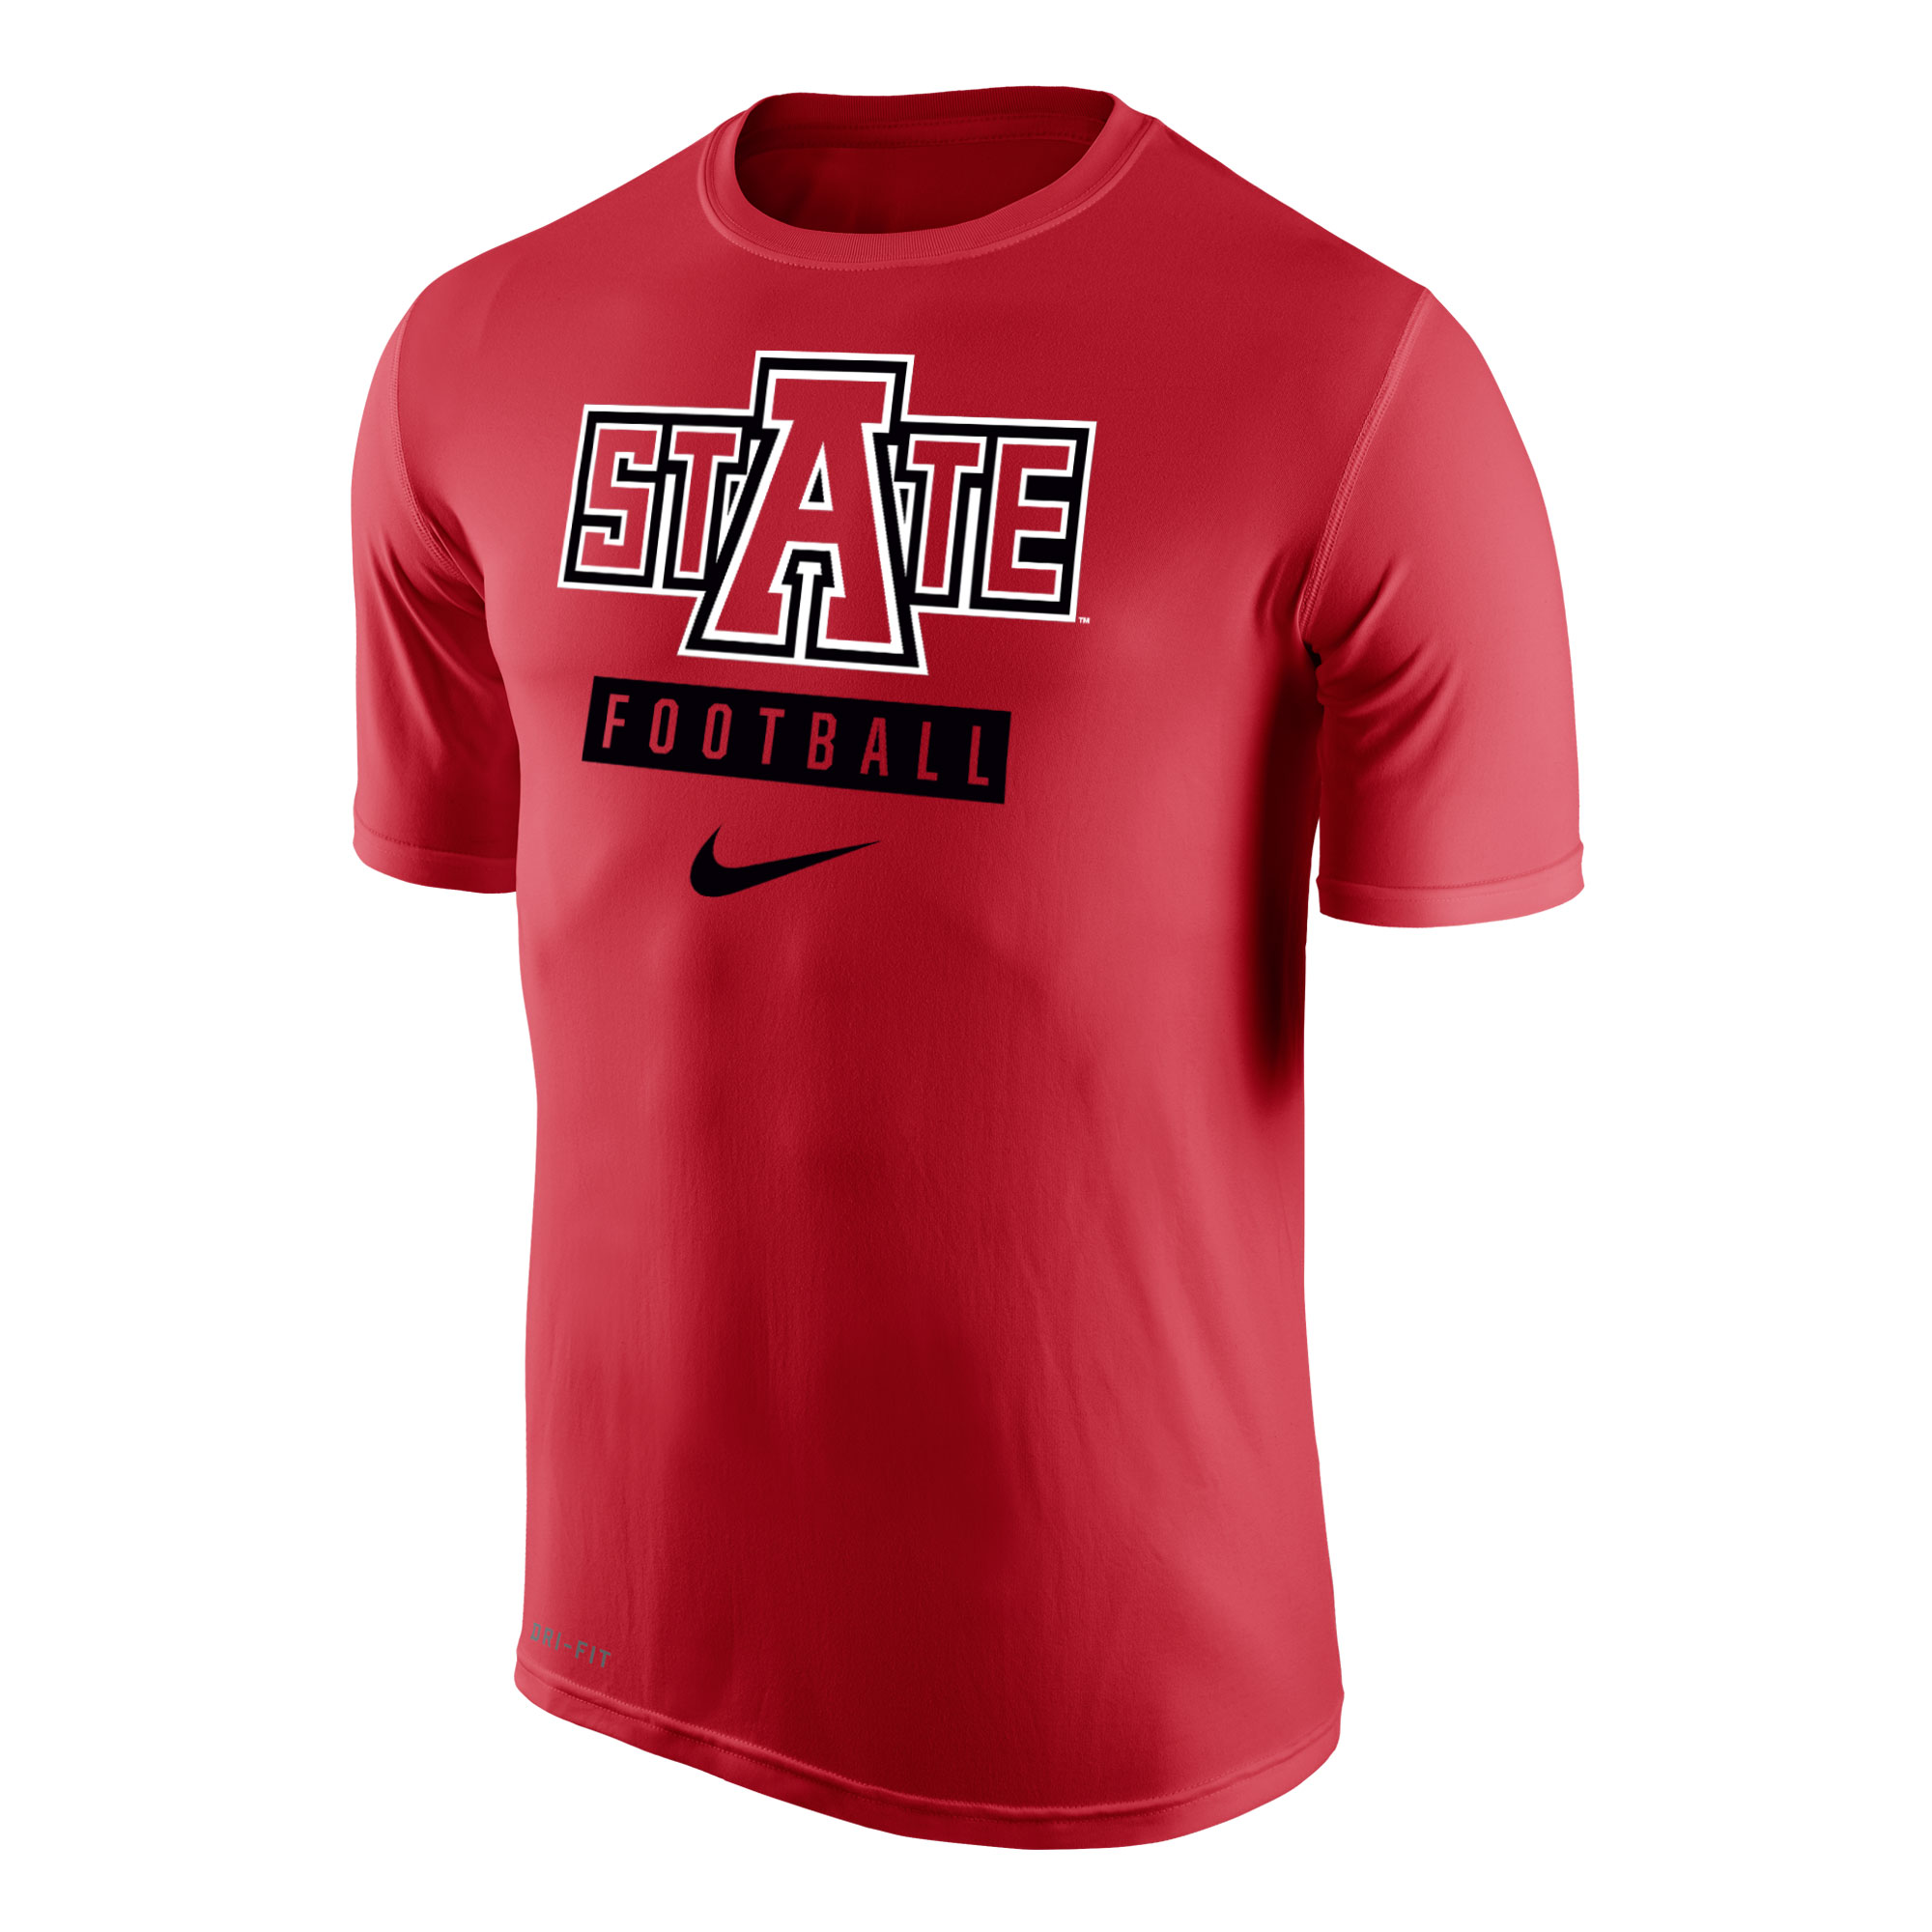 Arkansas State Football SS Tee